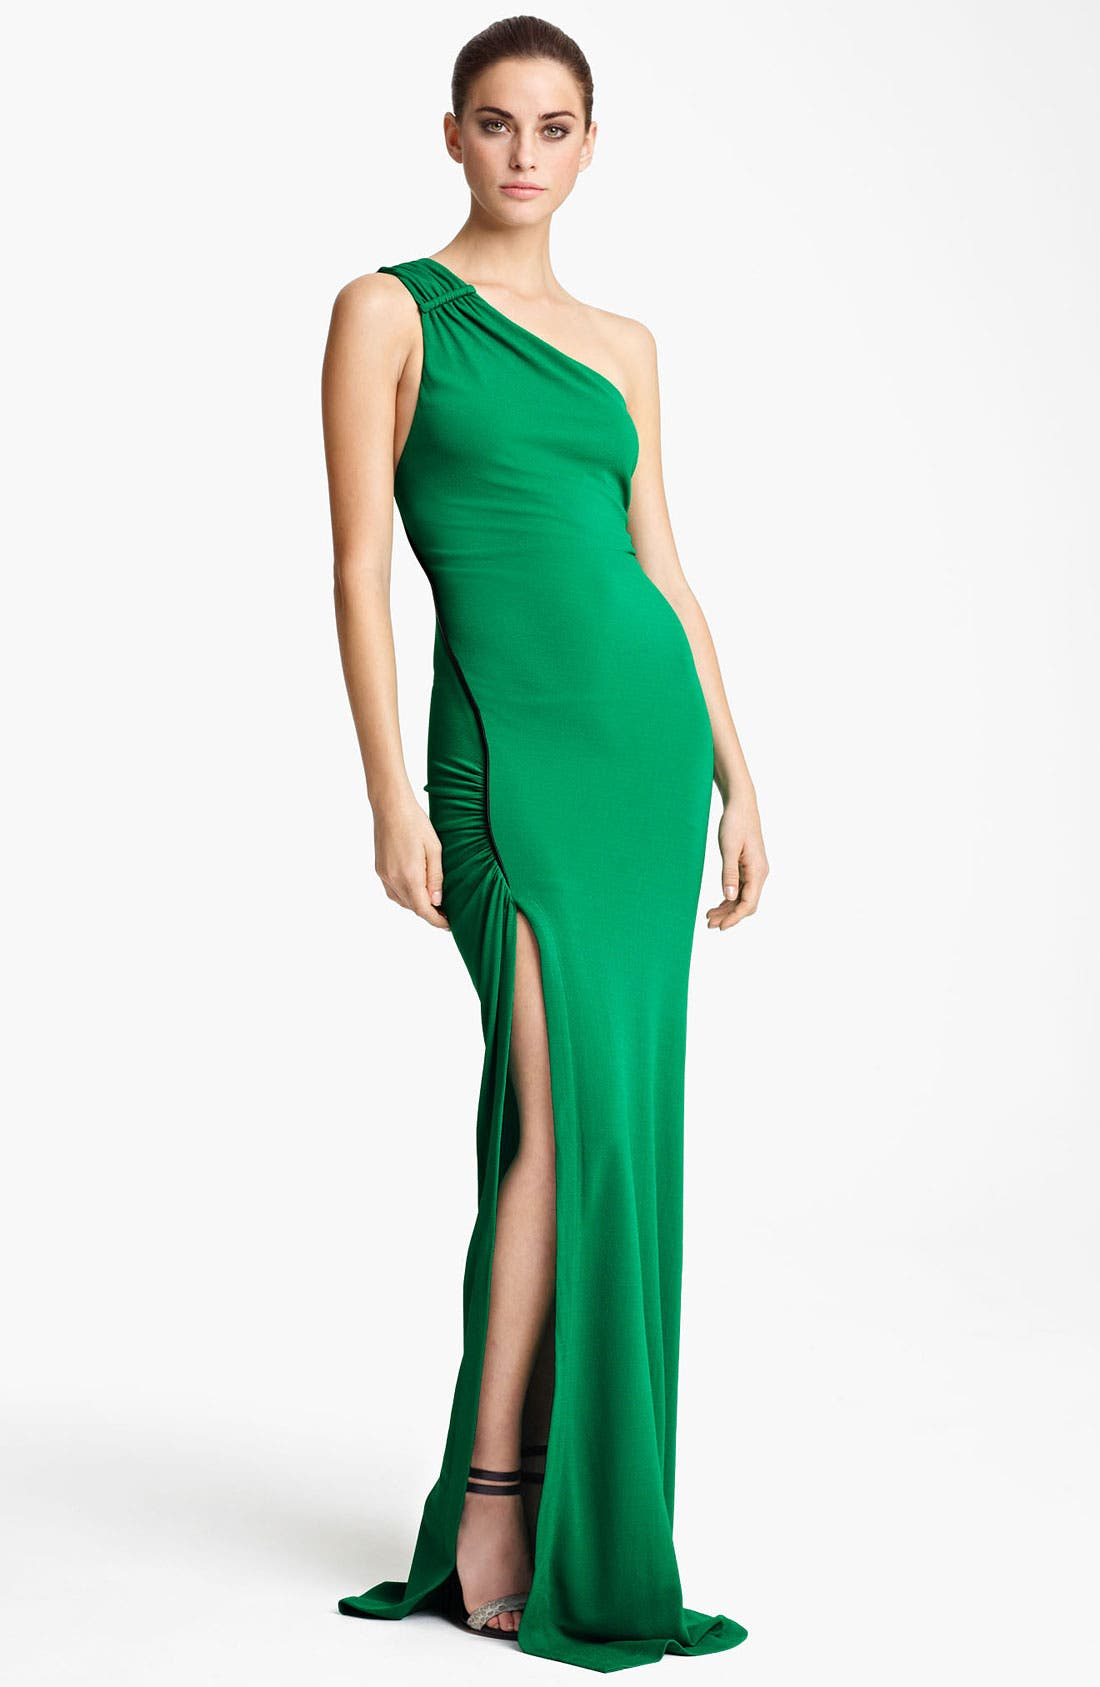 Alternate Image 1 Selected - Yigal Azrouël One Shoulder Matte Crepe Jersey Gown